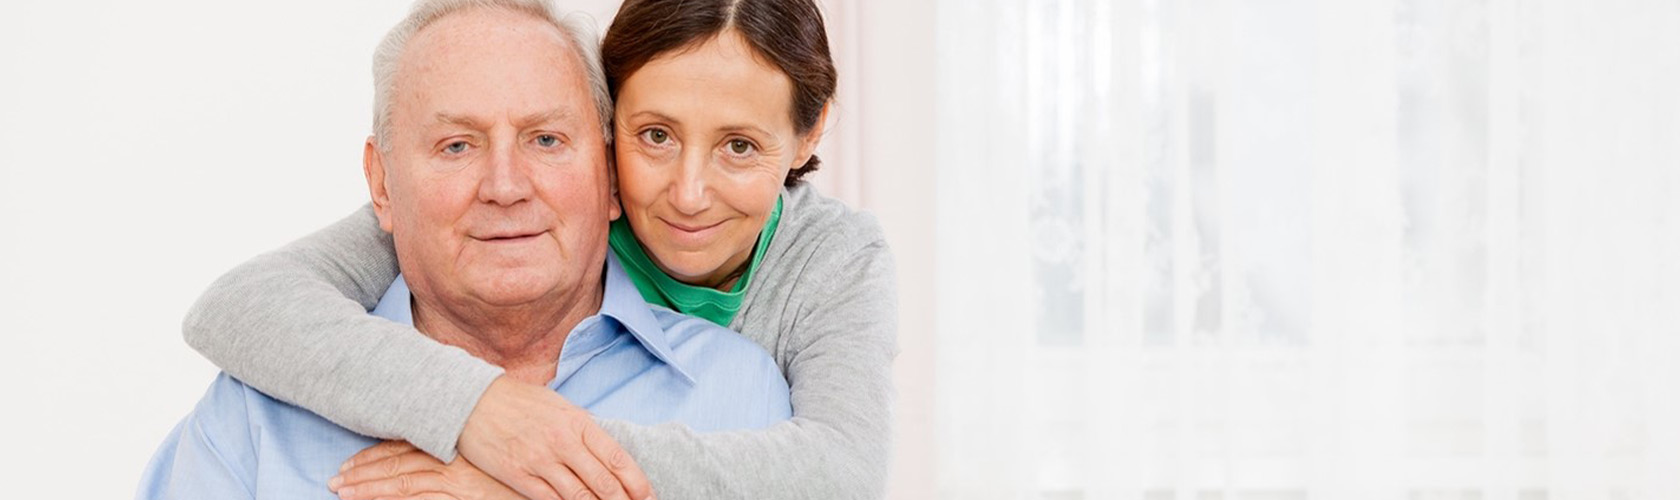 A woman with her arms around the shoulders of an older man.